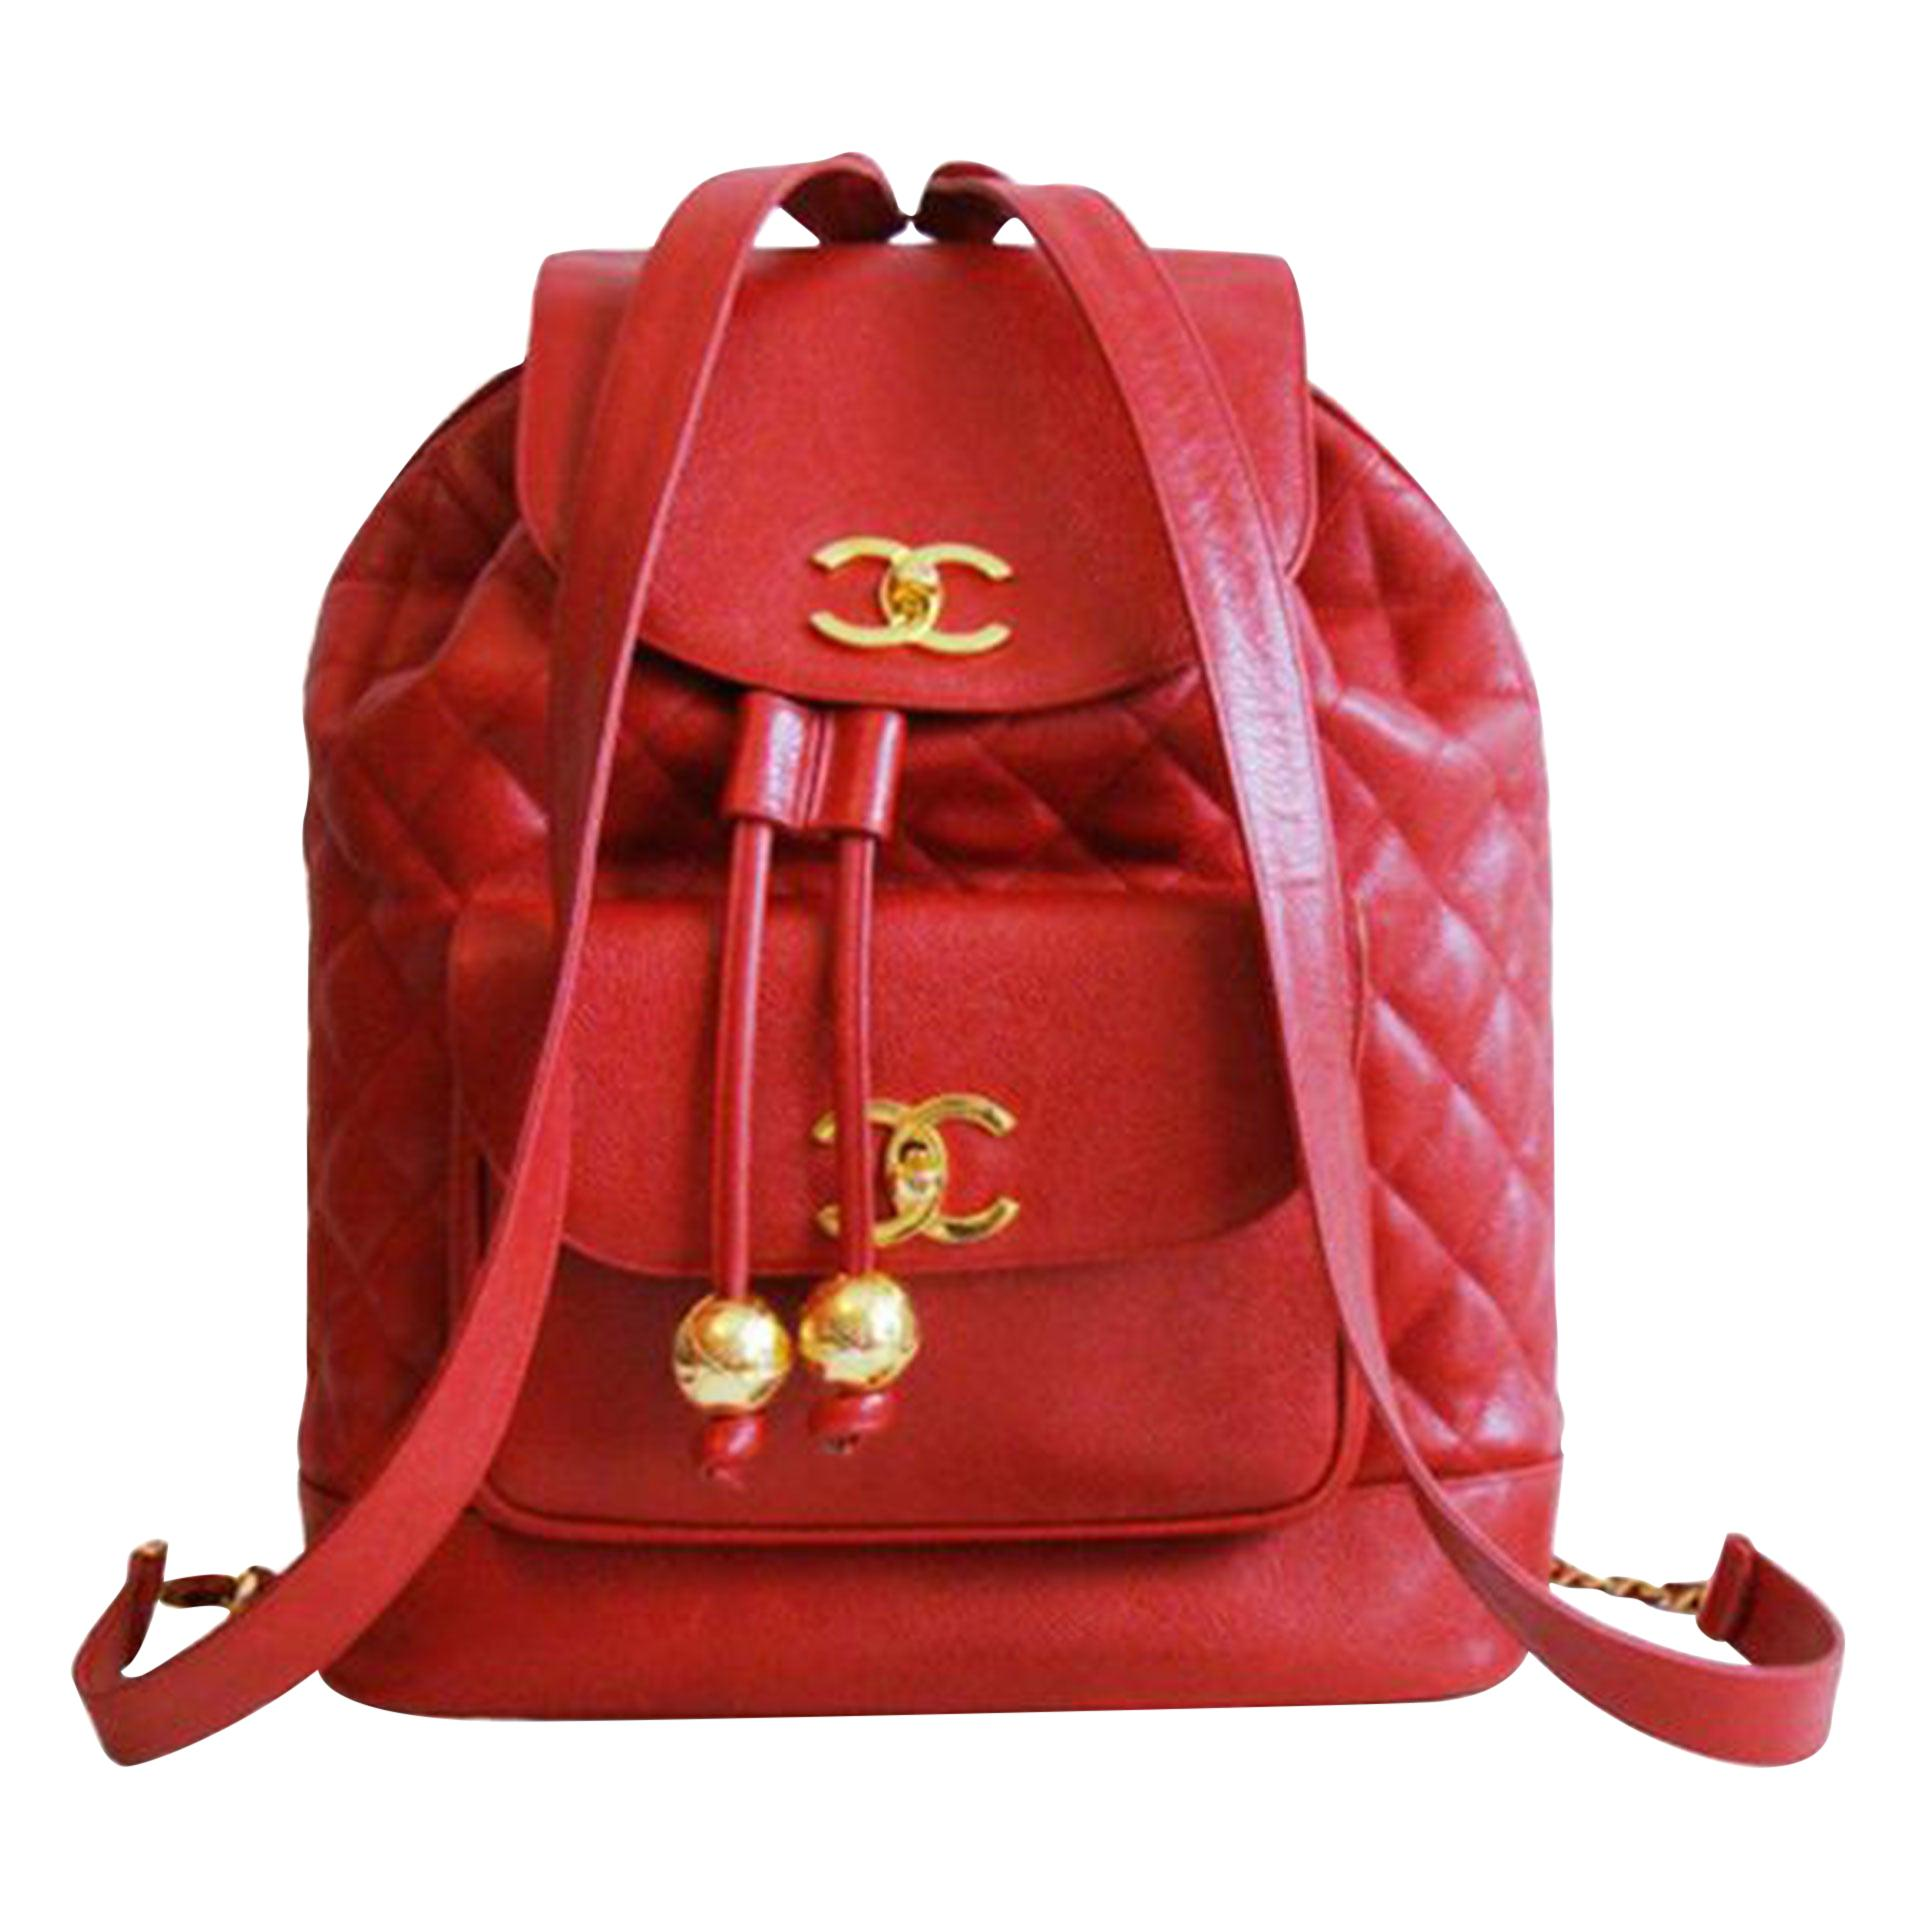 Chanel 90s Extra Large Jumbo Ultra Rare Vintage Red Caviar Leather Backpack